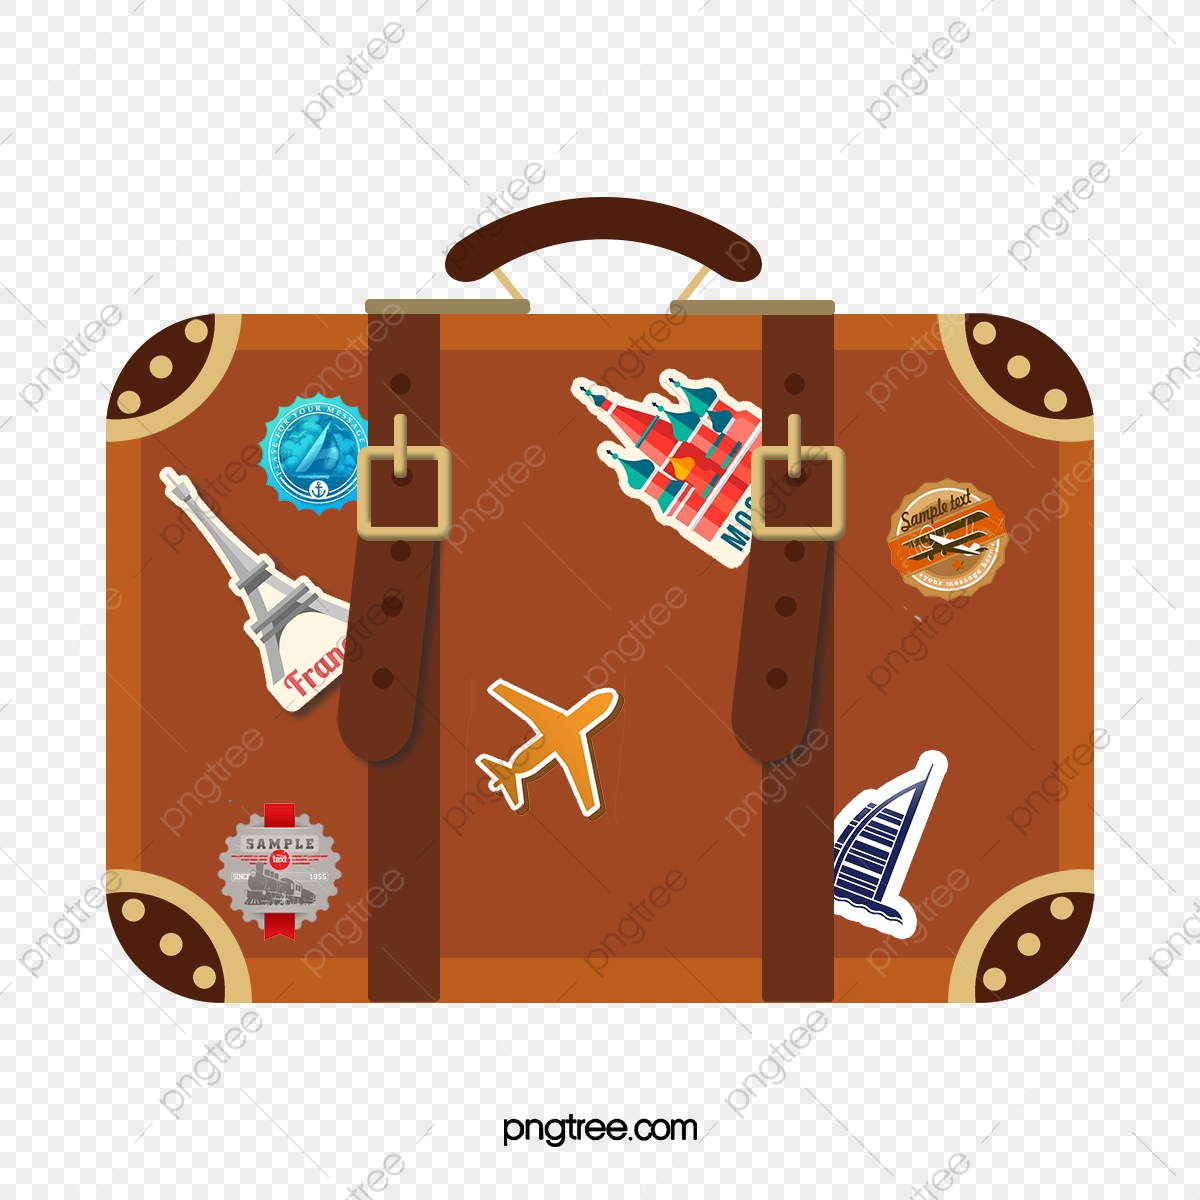 Suitcase Hand Painted Cartoon Png And Vector With Transparent